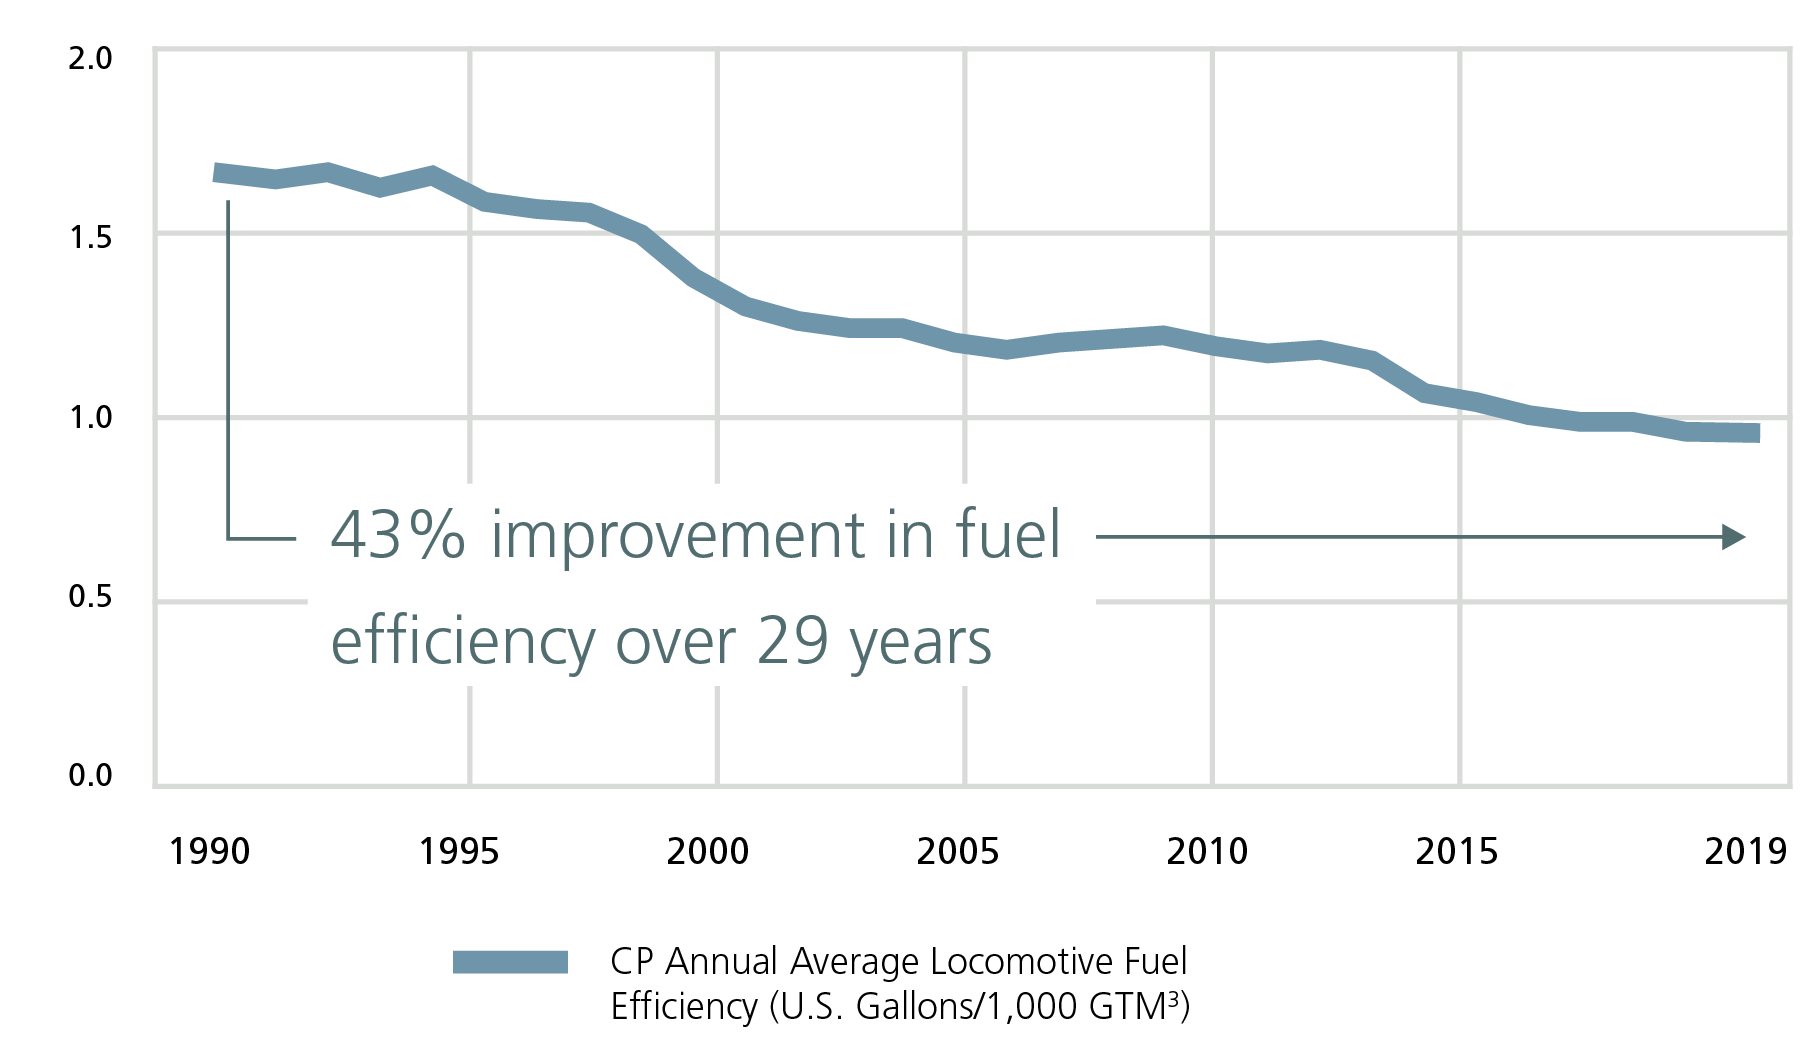 CP's locomotive fuel efficiency has improved 43% in the past 28 years